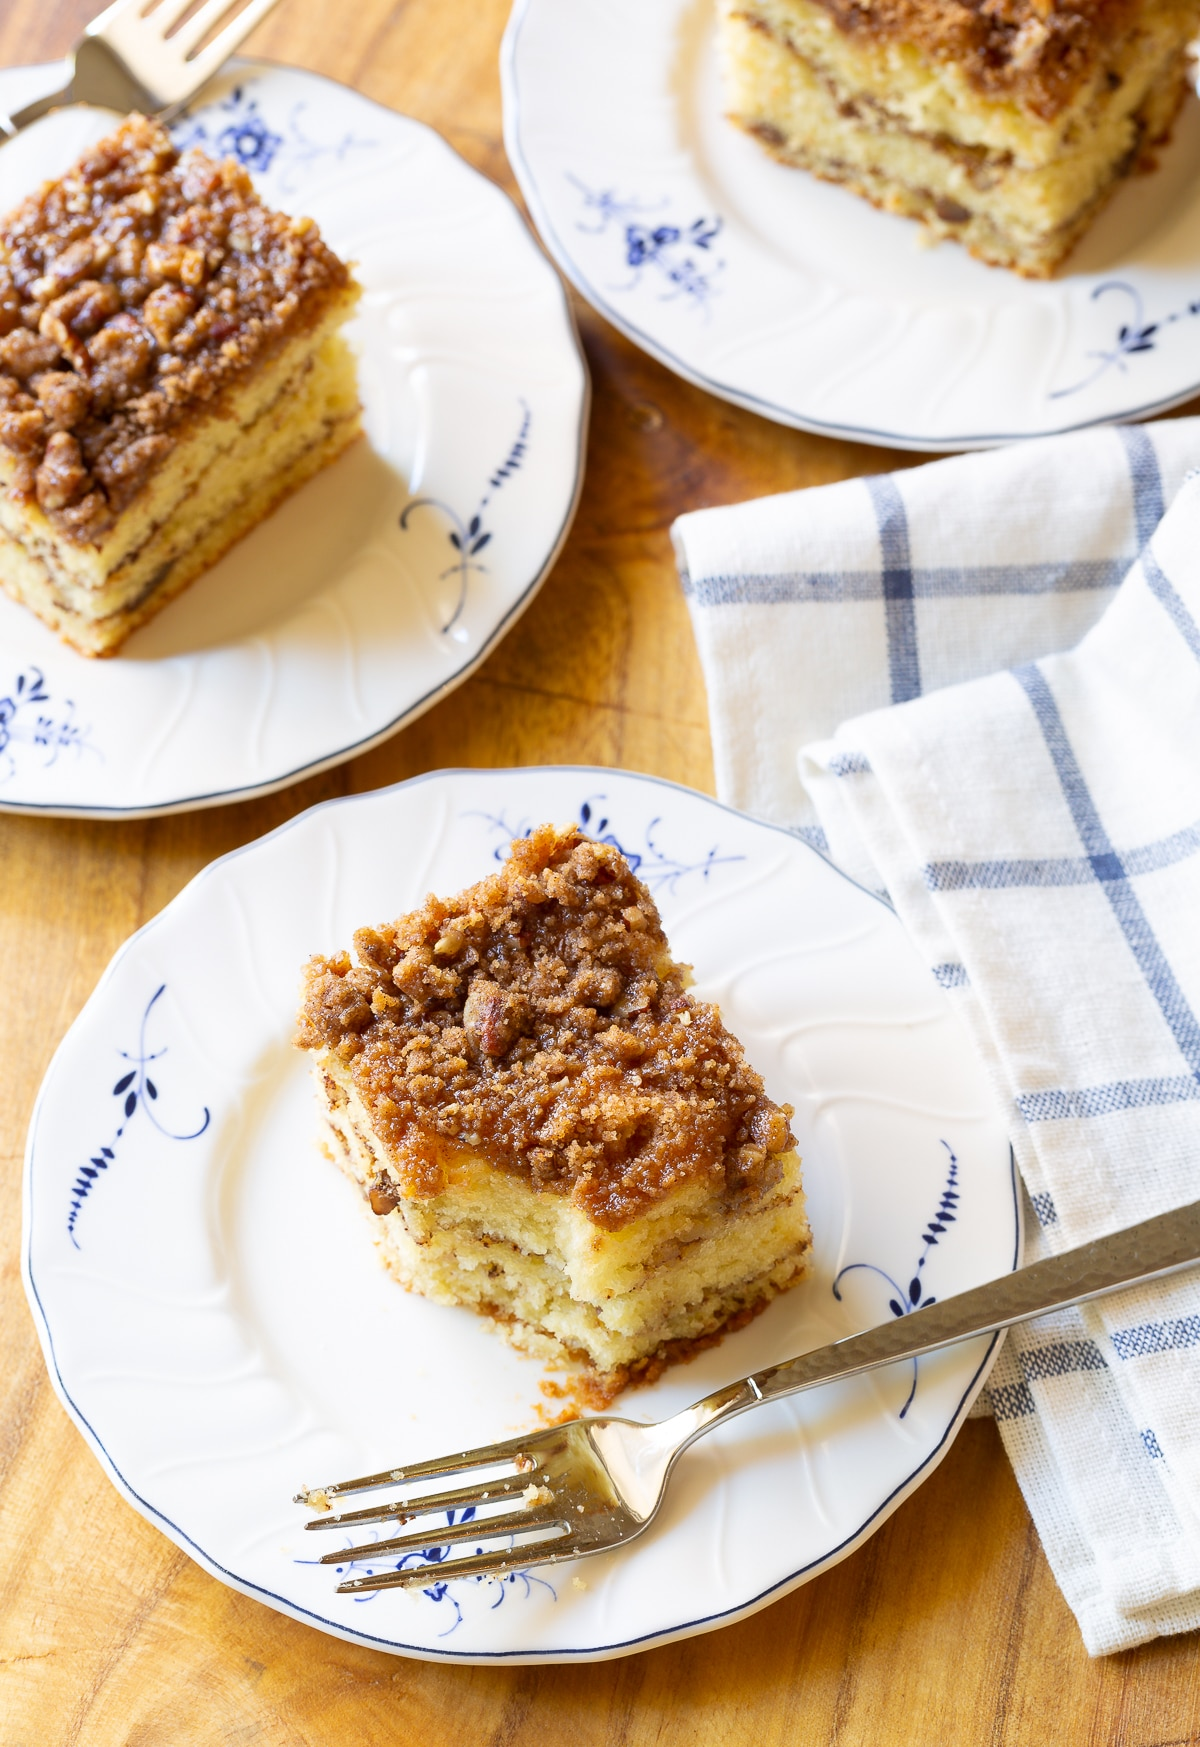 Kahlua Coffee Cake Recipe #ASpicyPerspective #coffee #cake #snack #breakfast #holidays